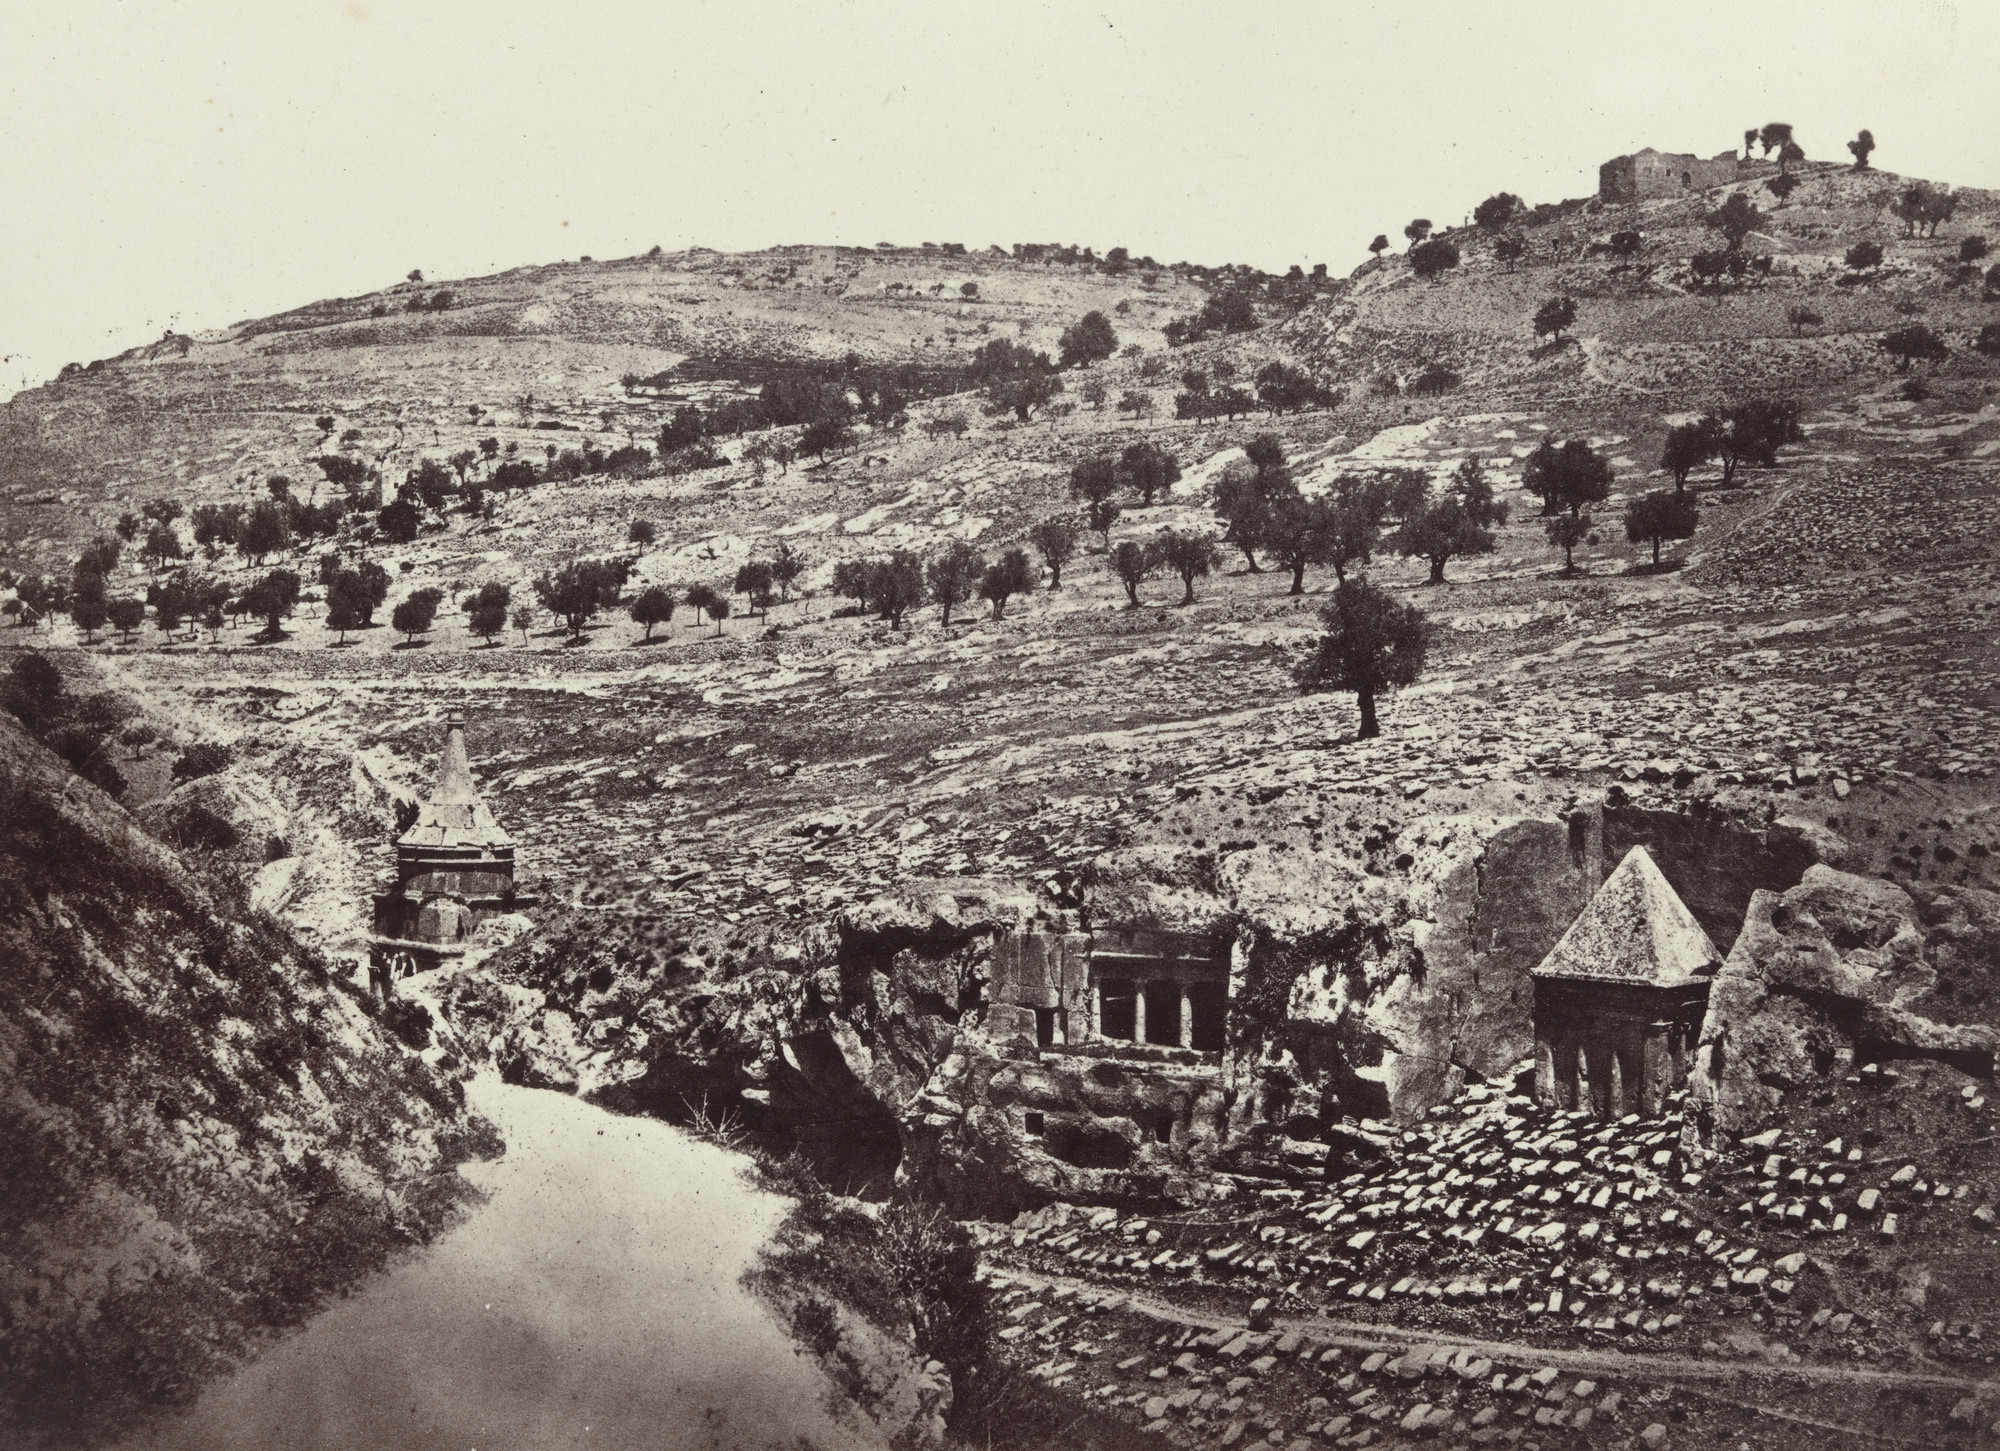 Francis Frith. The Valley of Jehoshaphat, Jerusalem (Plate 14). 1858-60